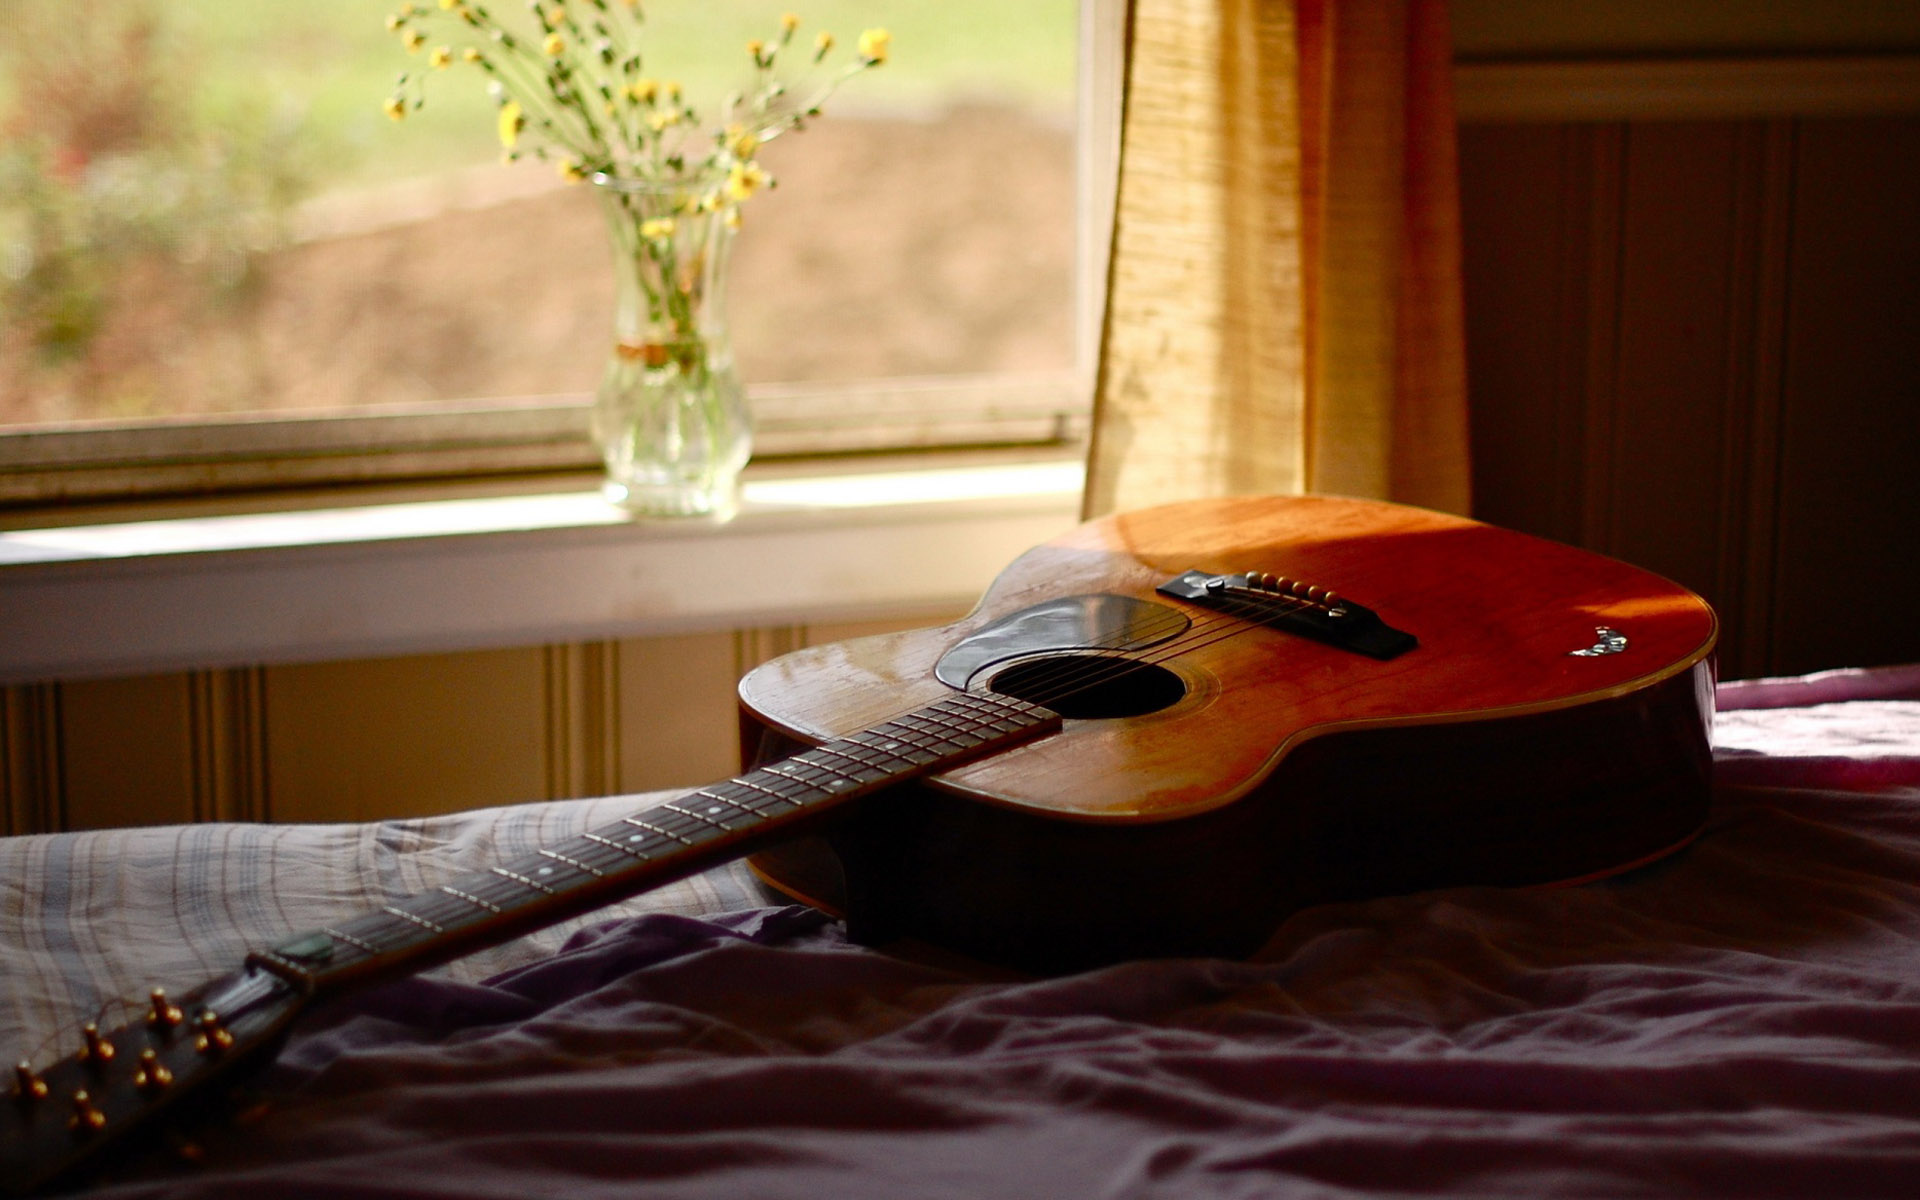 Guitar Wallpapers High Quality Download Free